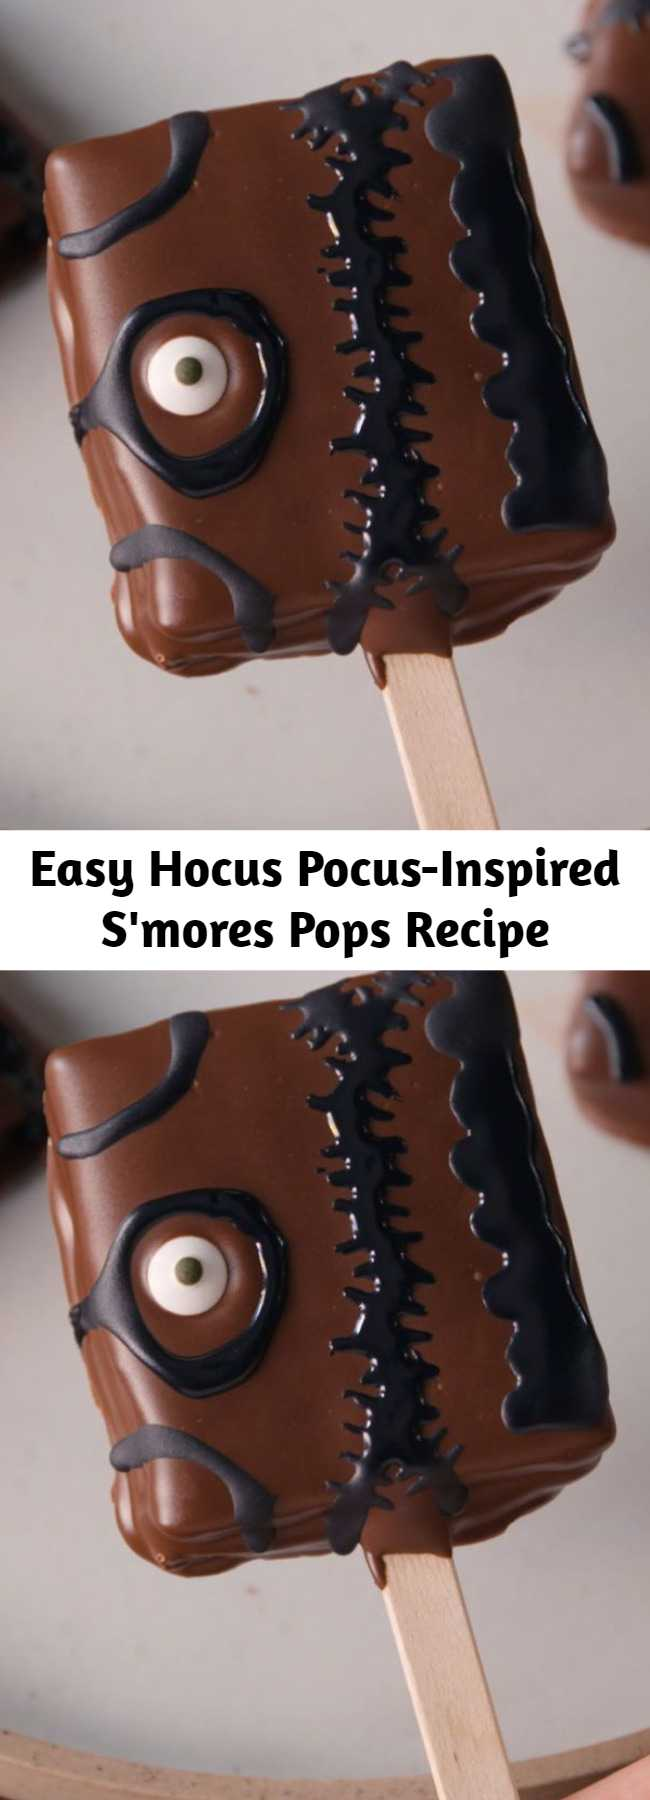 Easy Hocus Pocus-Inspired S'mores Pops Recipe - Looking for an easy Halloween dessert idea? This Hocus Pocus-Inspired S'mores Pops Recipe is the best. You'll love them even more than Bette Midler loved her booooook! (Note: You'll need popsicle sticks and candy eyes to complete the look.) #halloween #recipes #easyrecipes #diy #hocuspocus #disney #pops #hocus #pocus #smores #dessert #forparties #kids #ideas